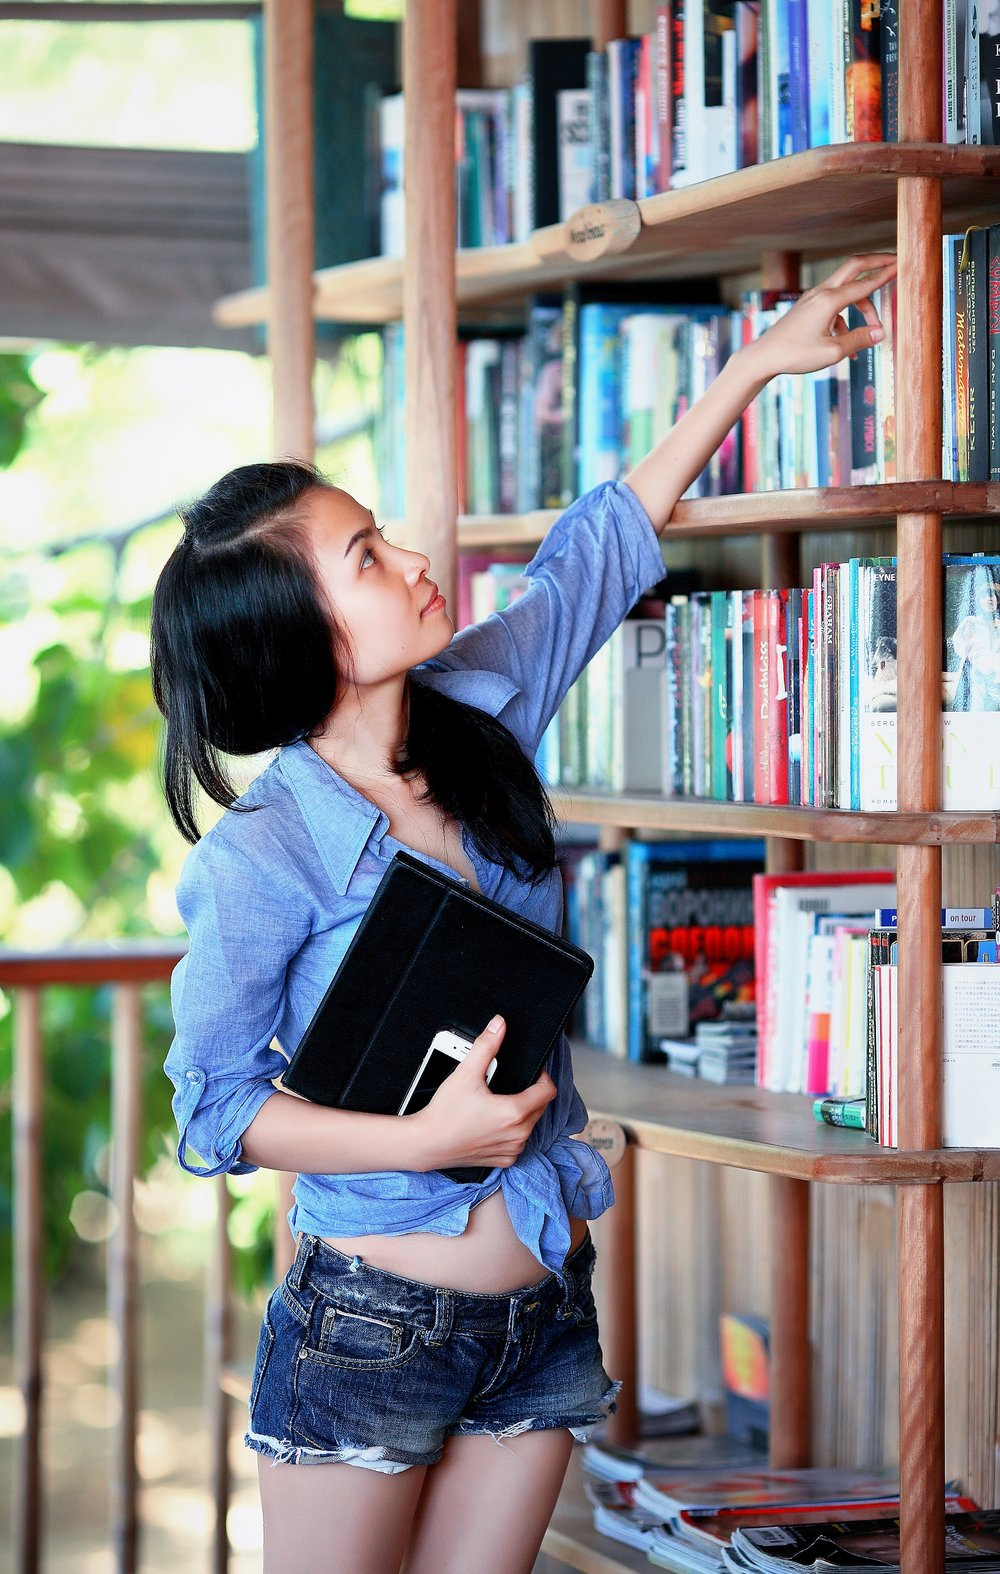 114 academic-adolescent-bookcase-207708.jpg